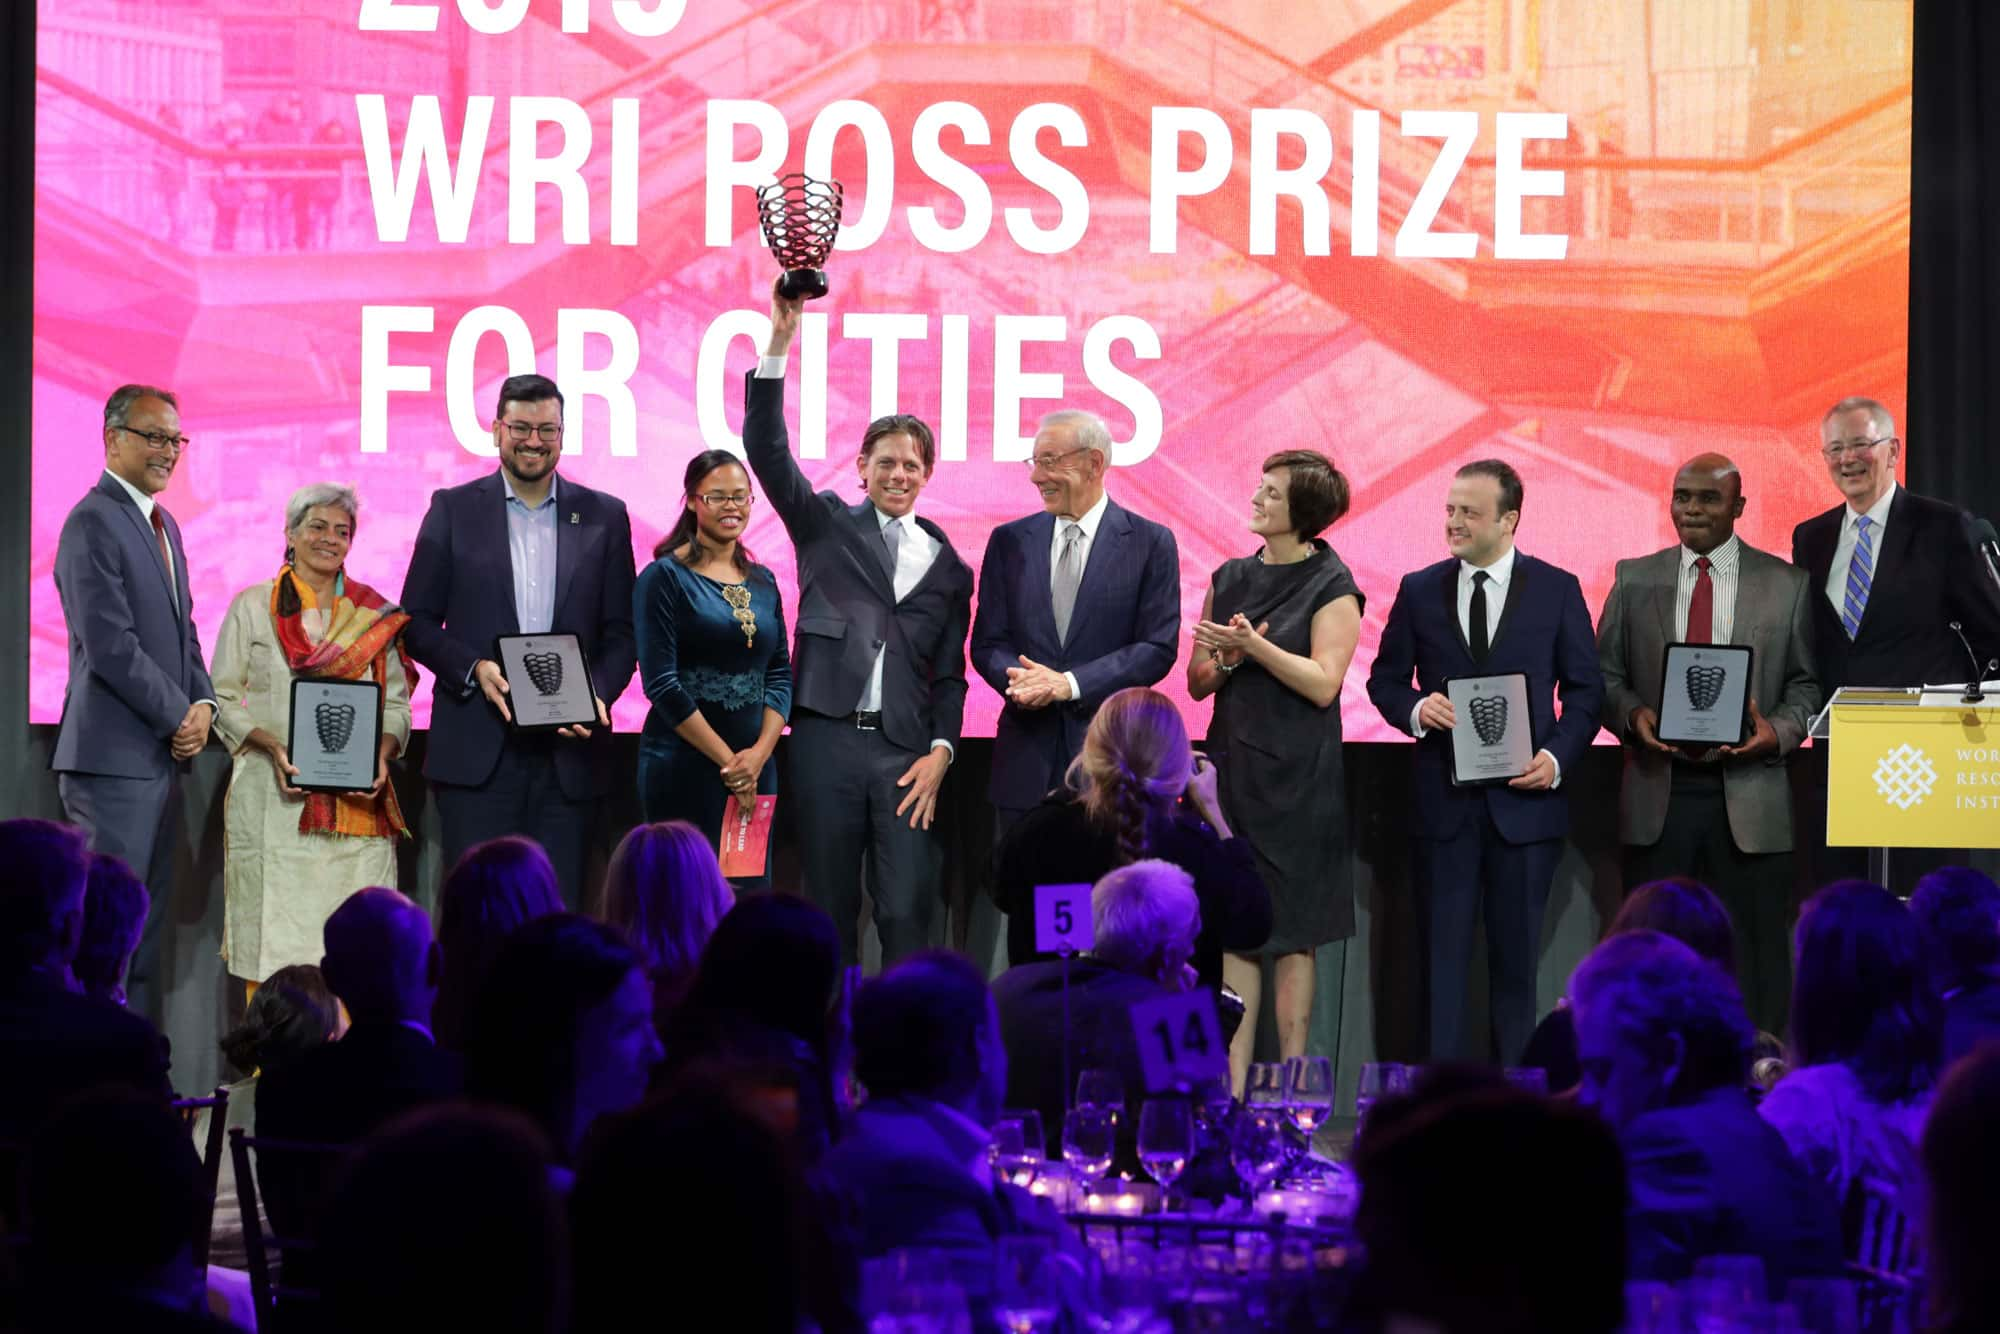 Home | WRI Ross Prize For Cities